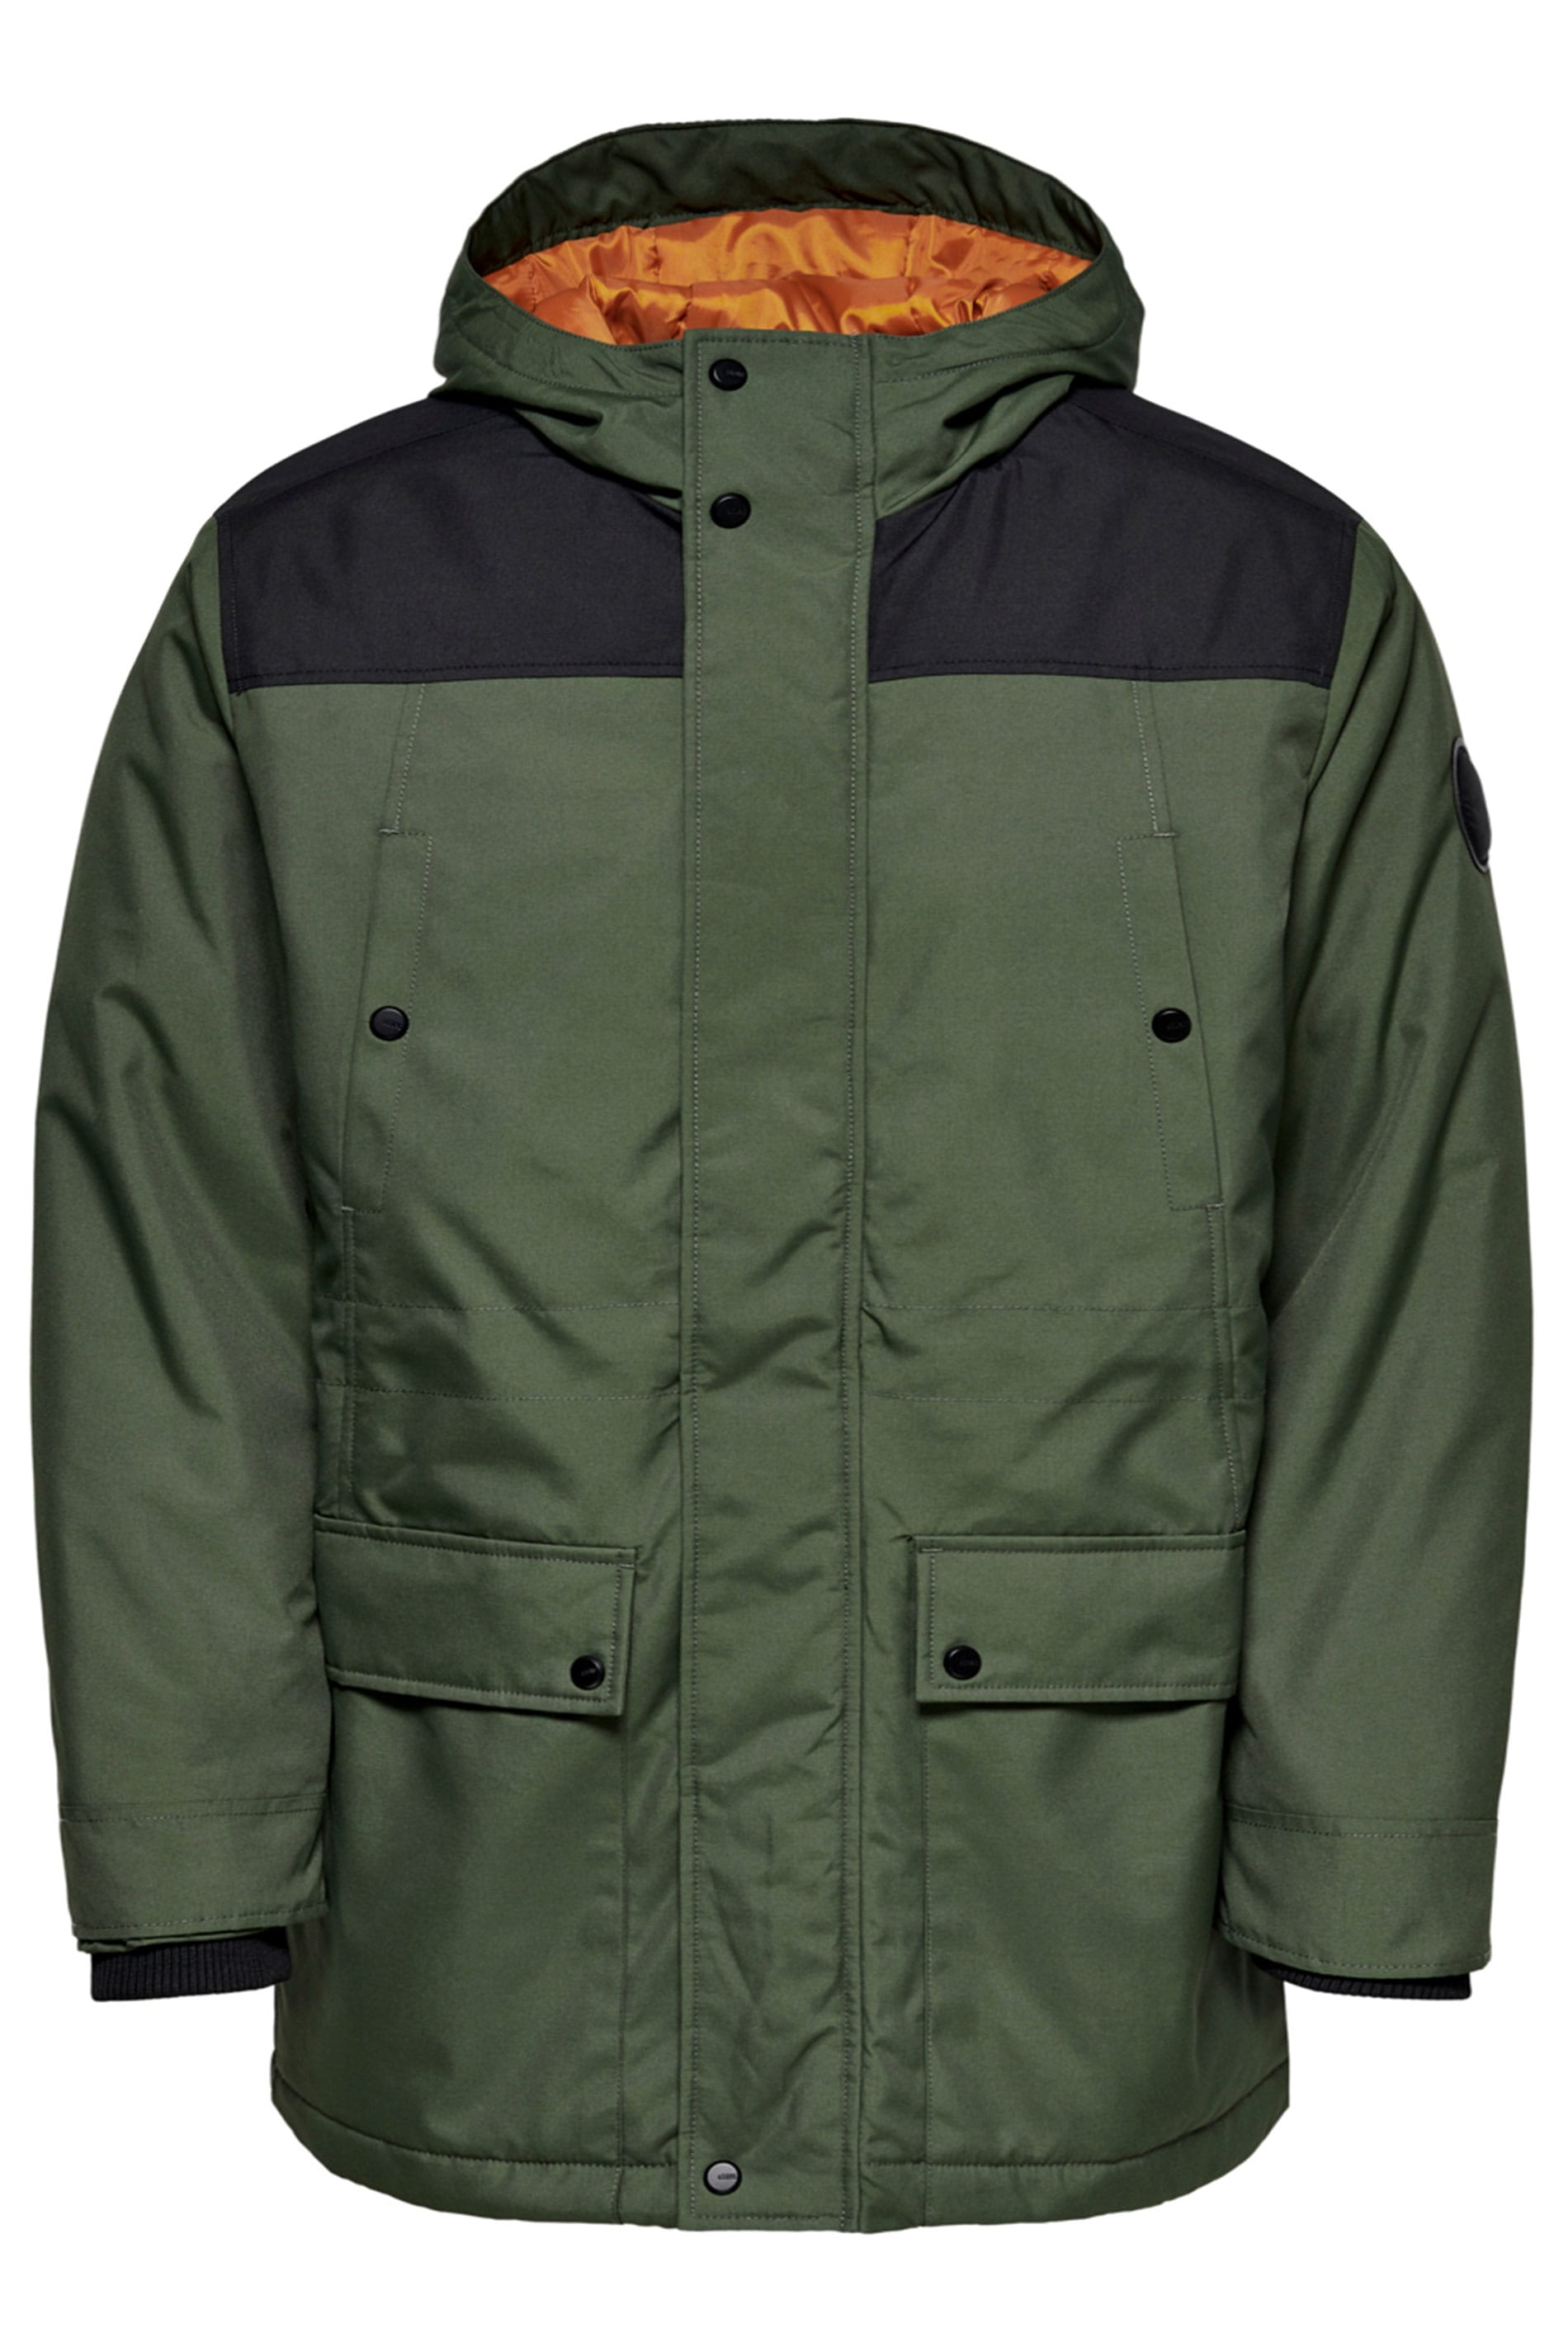 ONLY & SONS Khaki Peter Parka Coat